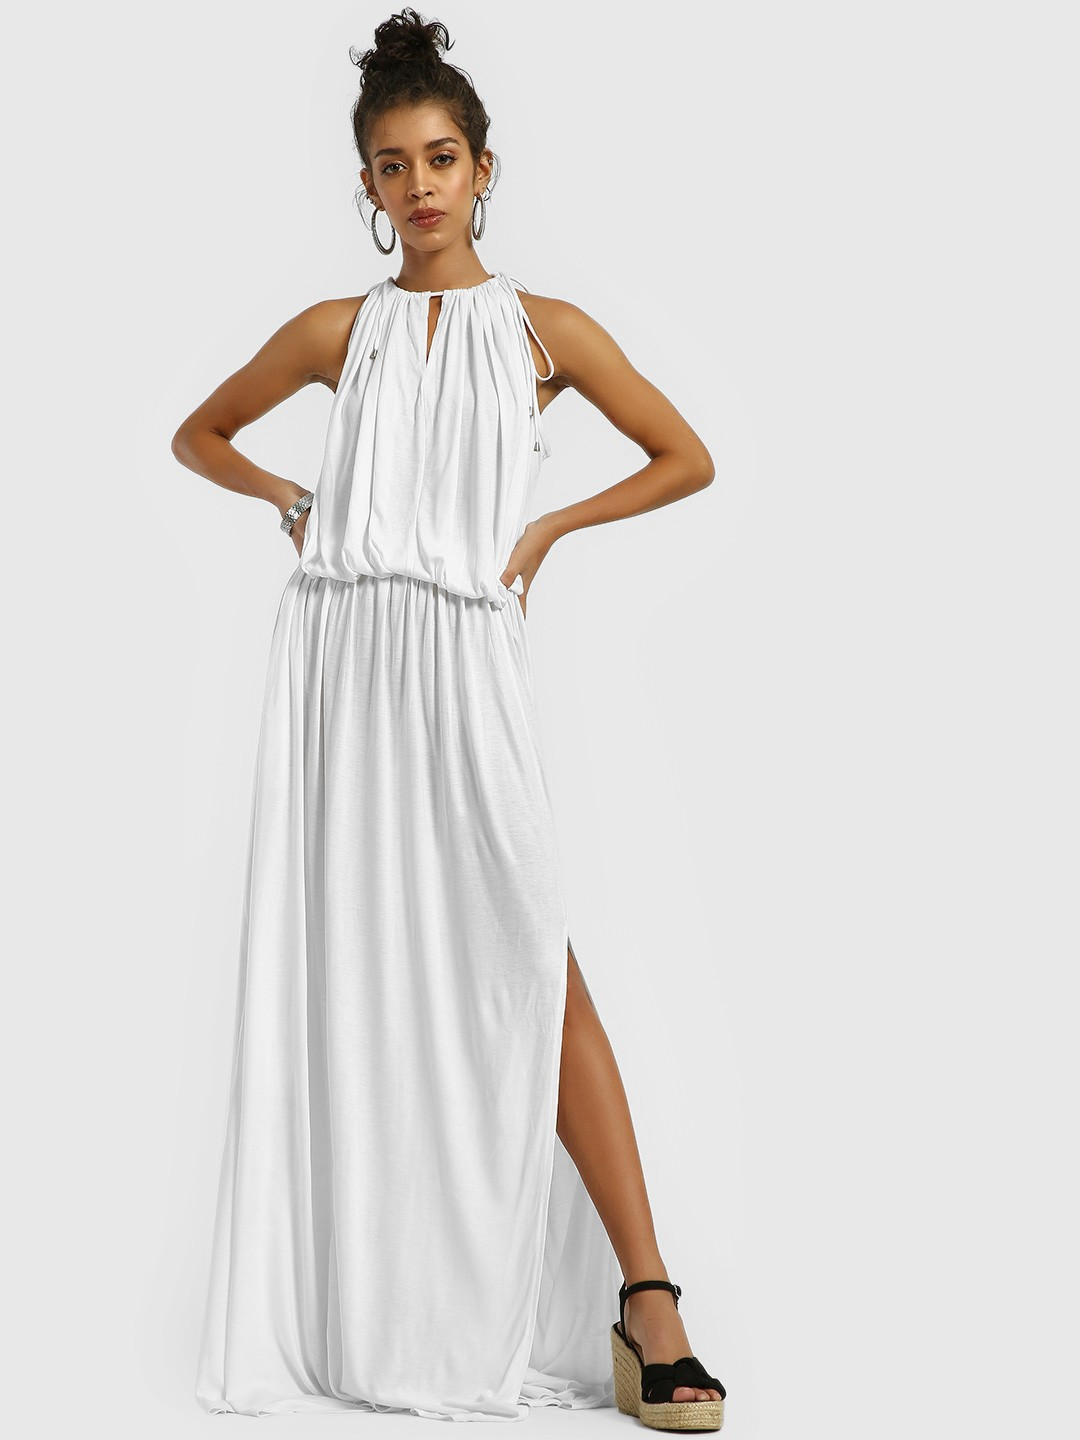 The Paperdoll Company White Halter Neck Maxi Dress 1